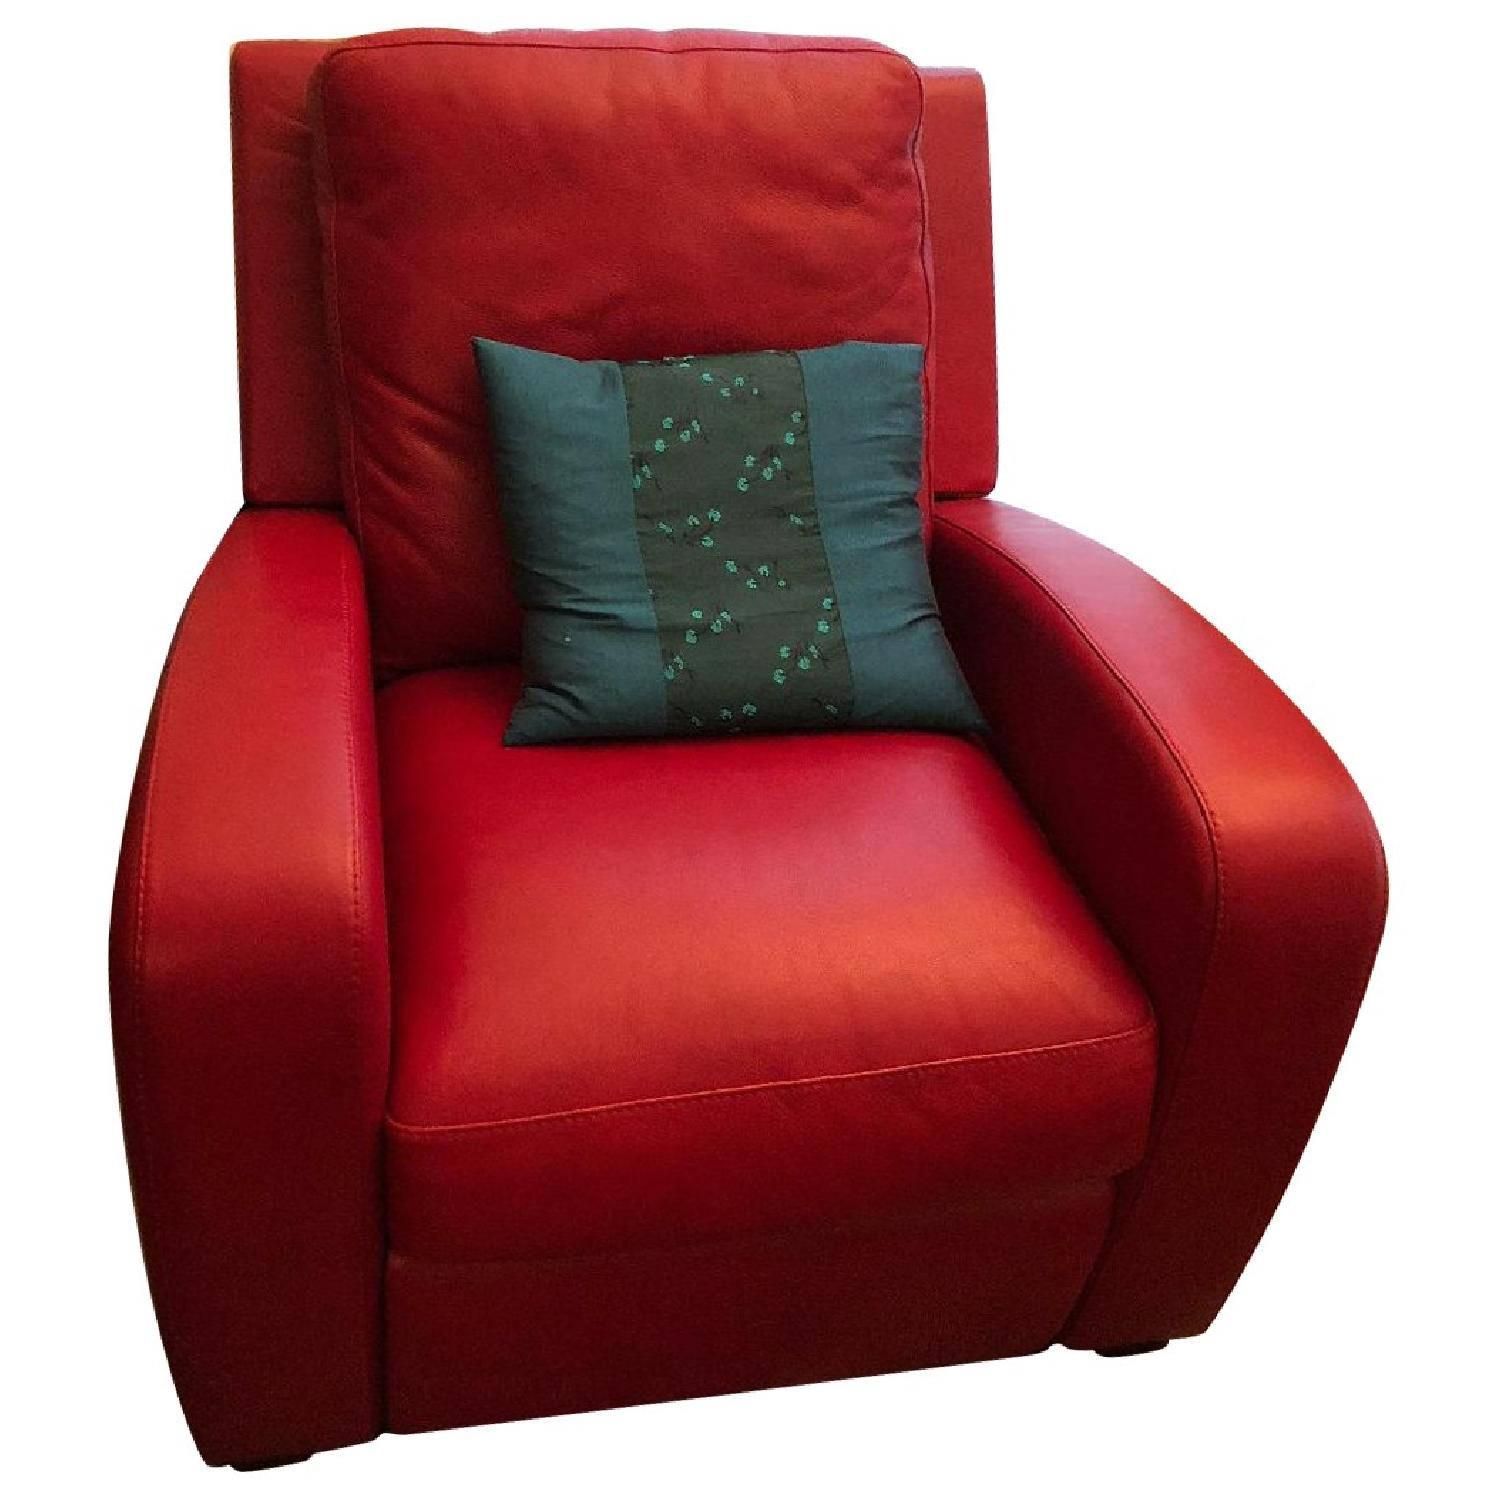 red recliner chairs booster for toddlers crate barrel leather in aptdeco slide